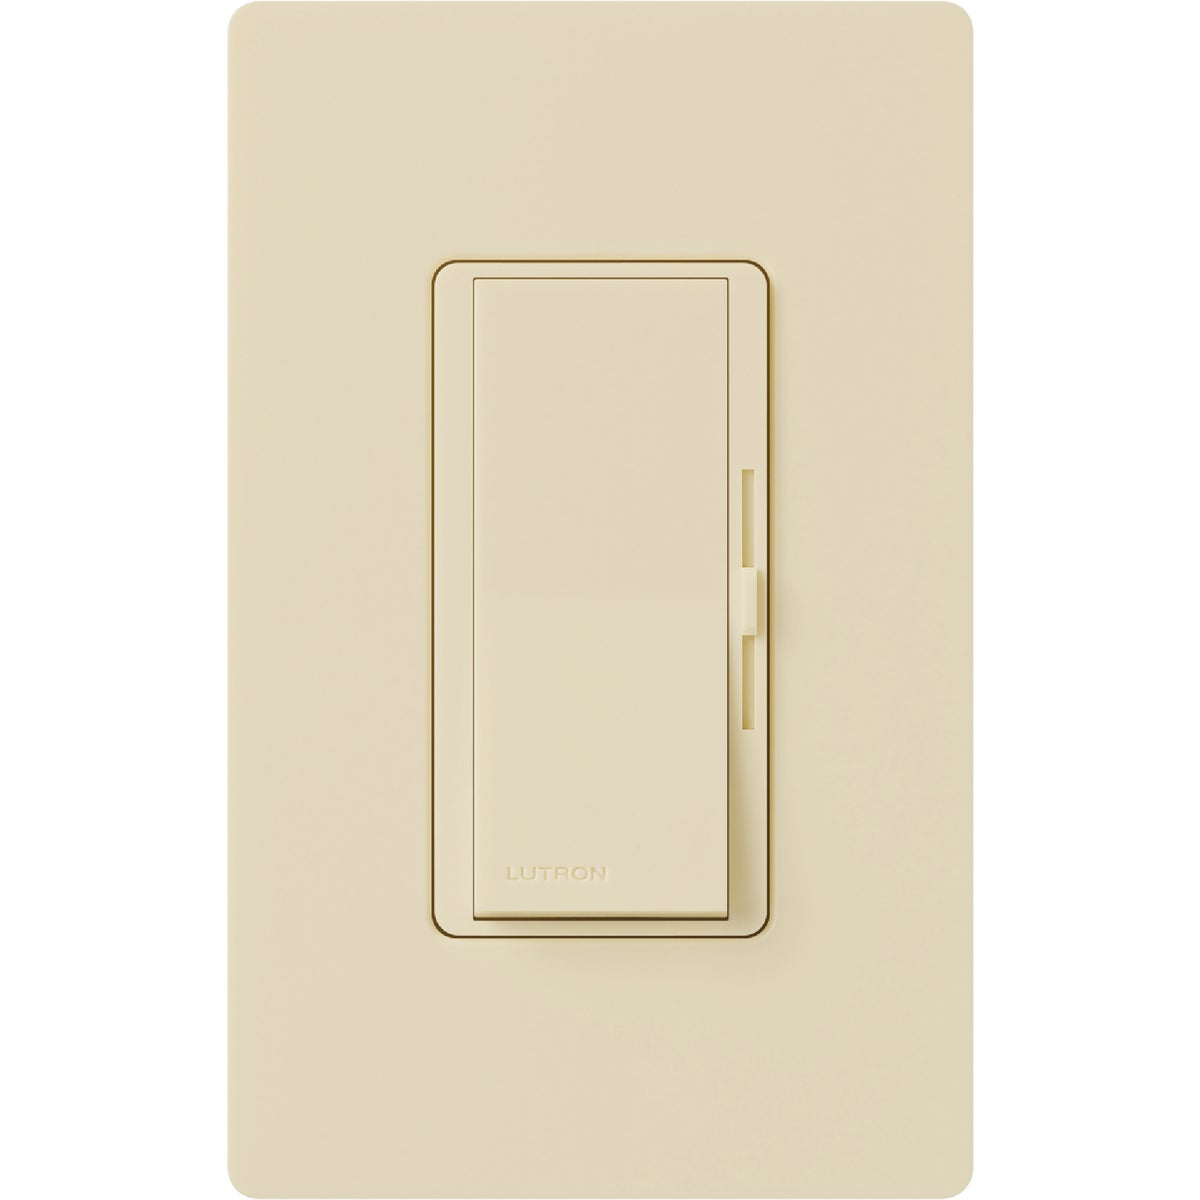 IV CFL/LED DIMMER - DVWCL-153PH-IV by Lutron Elect Co Inc